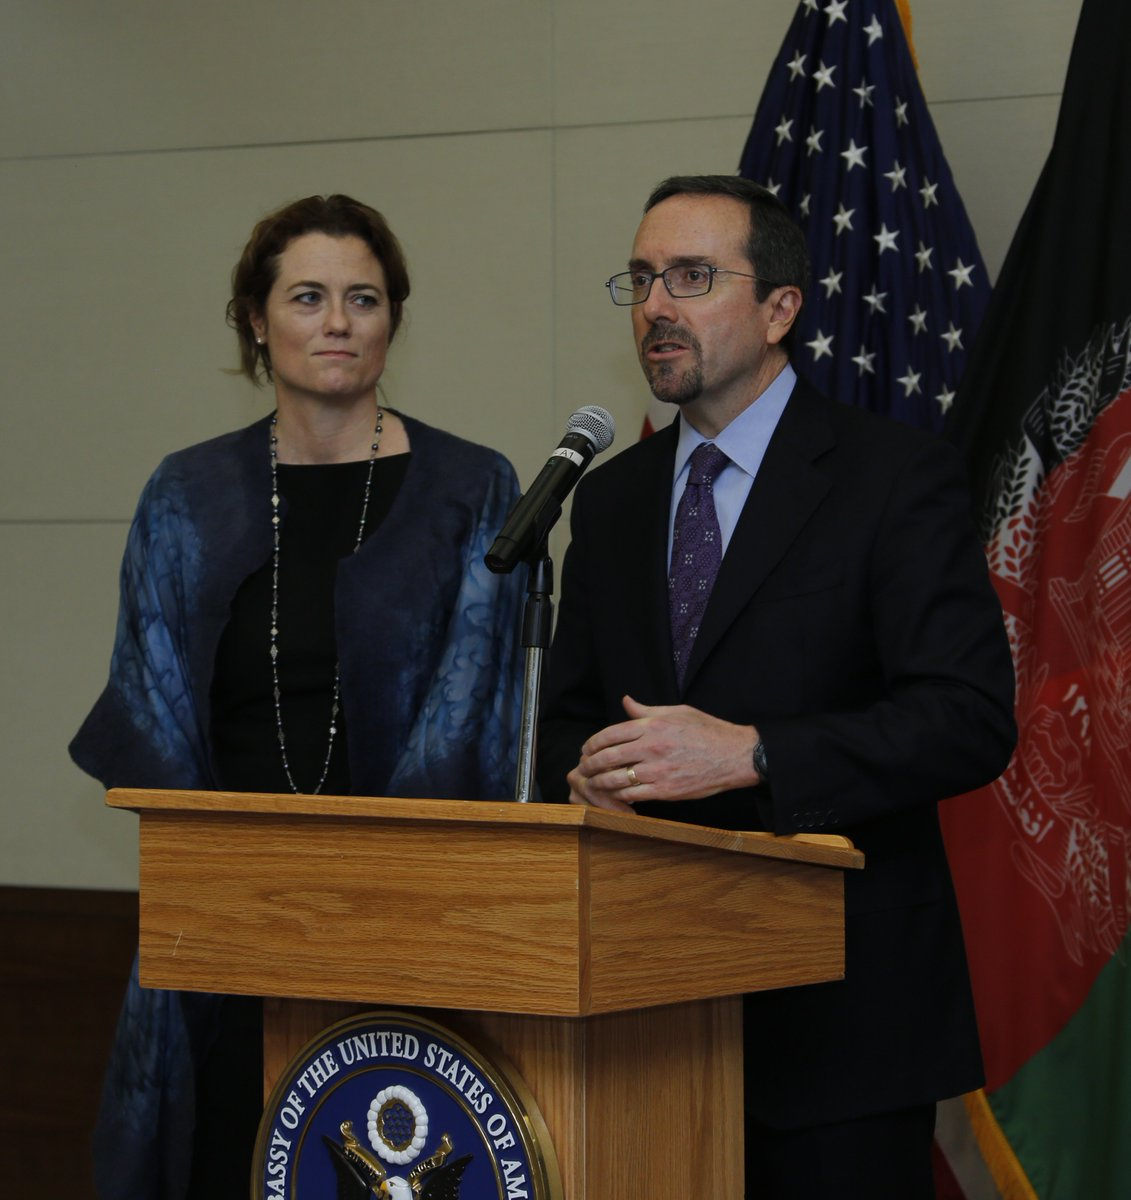 Thank you to all our guests who came to our welcome reception yesterday. I am pleased to meet you and look forward to working together to create a brighter future for #Afghanistan and a stronger U.S.-Afghan partnership